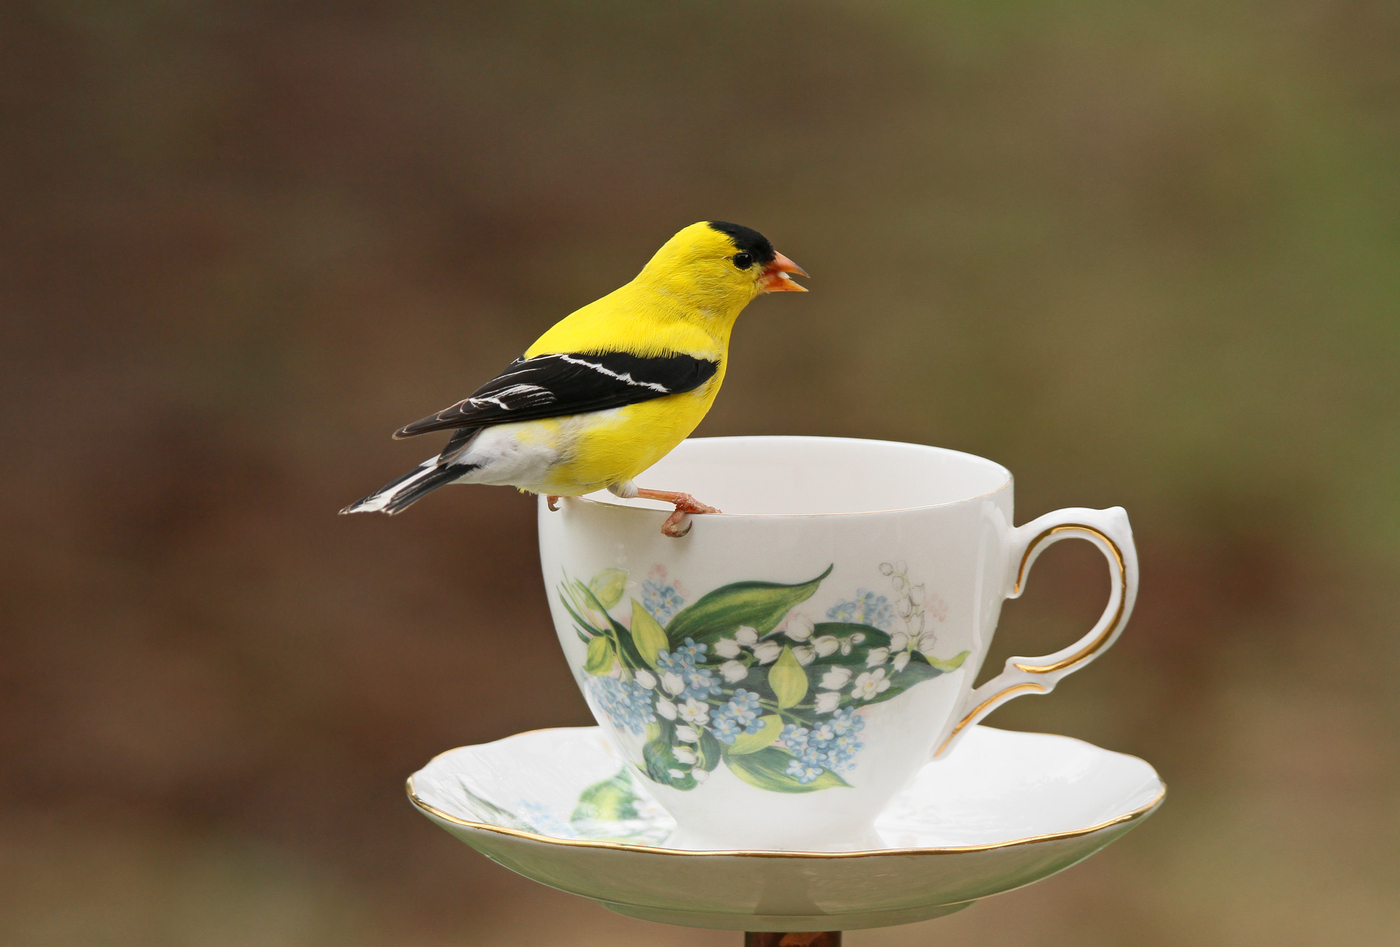 Goldfinch Teacup #9